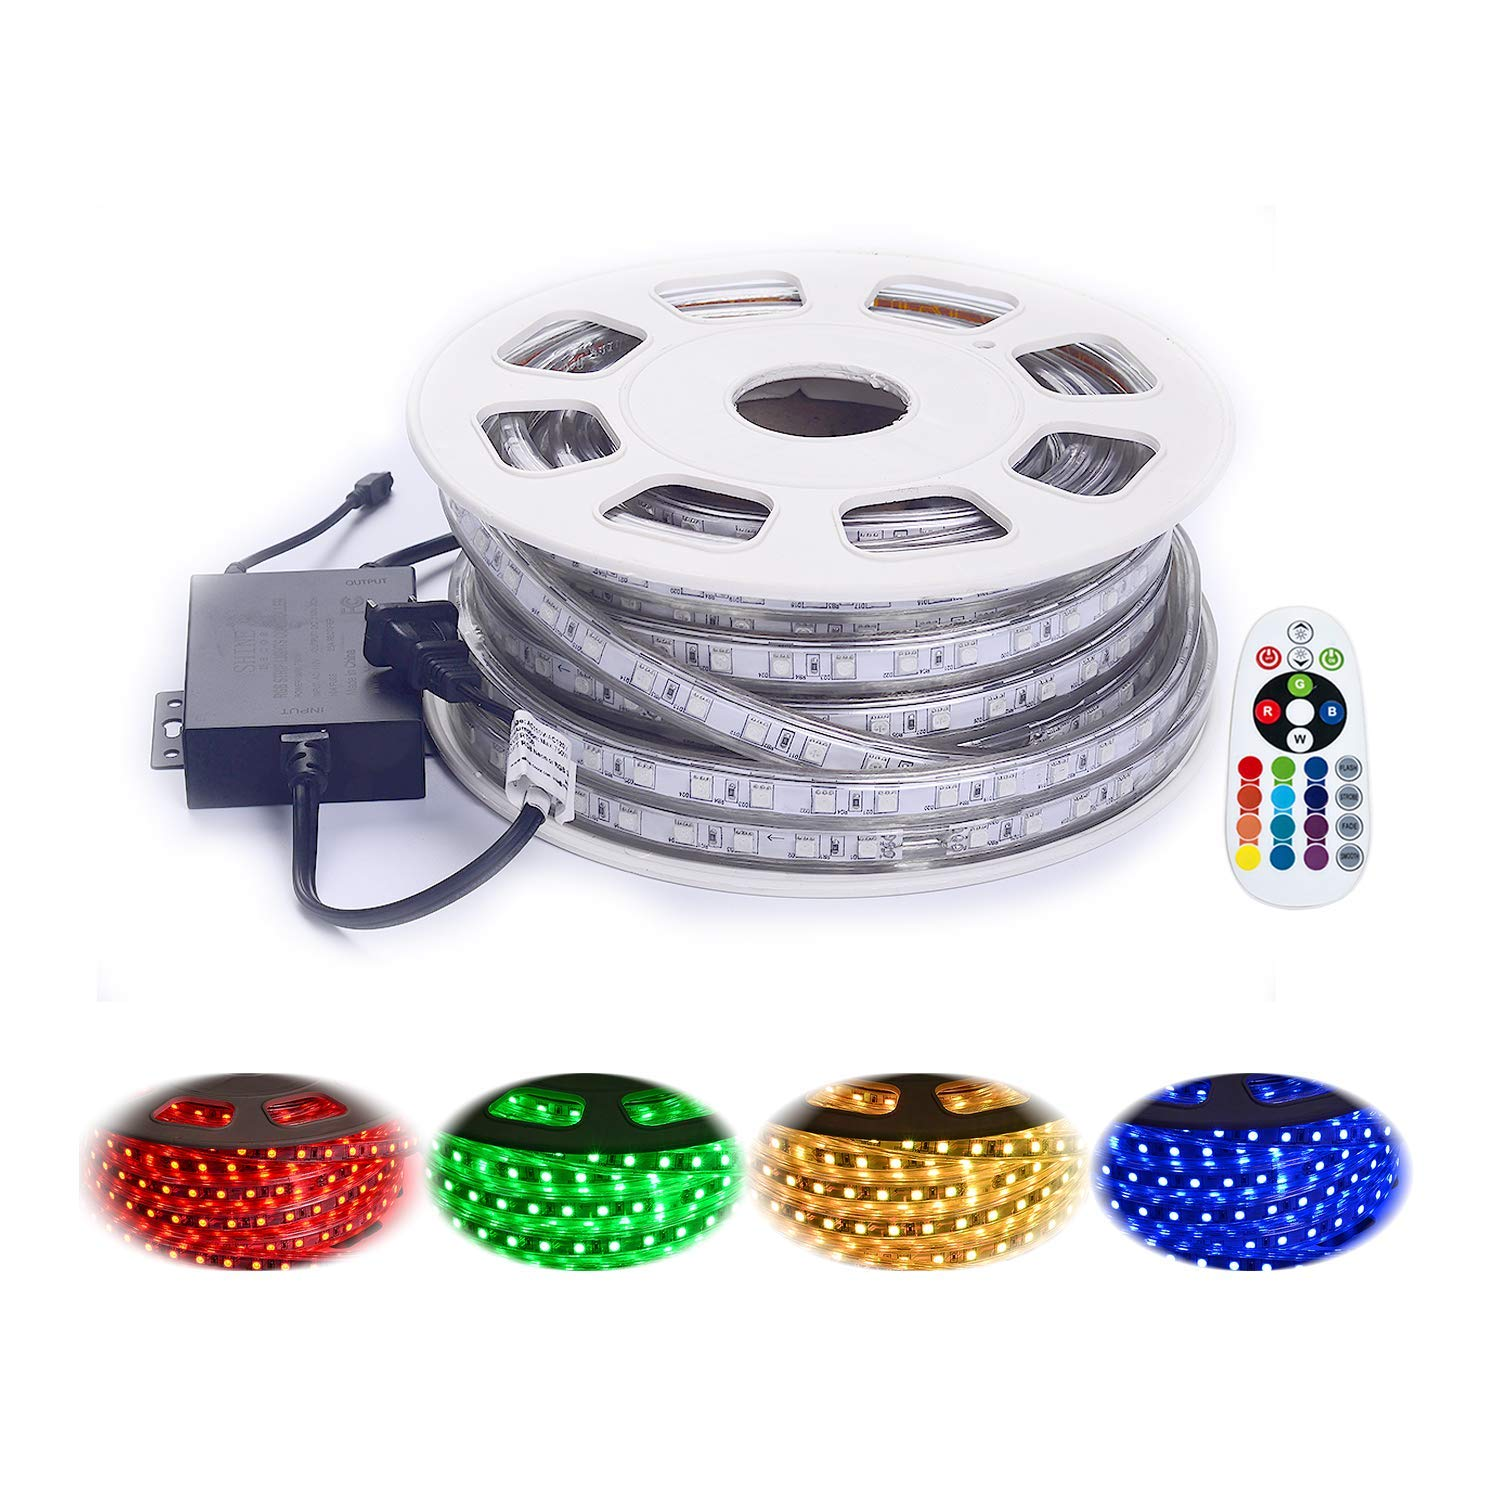 Shine Decor 14 Colors RGB Led Strip Lights, Rope Light, High Voltage 110V-120V, SMD5050,50ft/roll, with Plastic Tube Cover, Flexible Indoor/Outdoor use, Accessories Included + Remote Controller